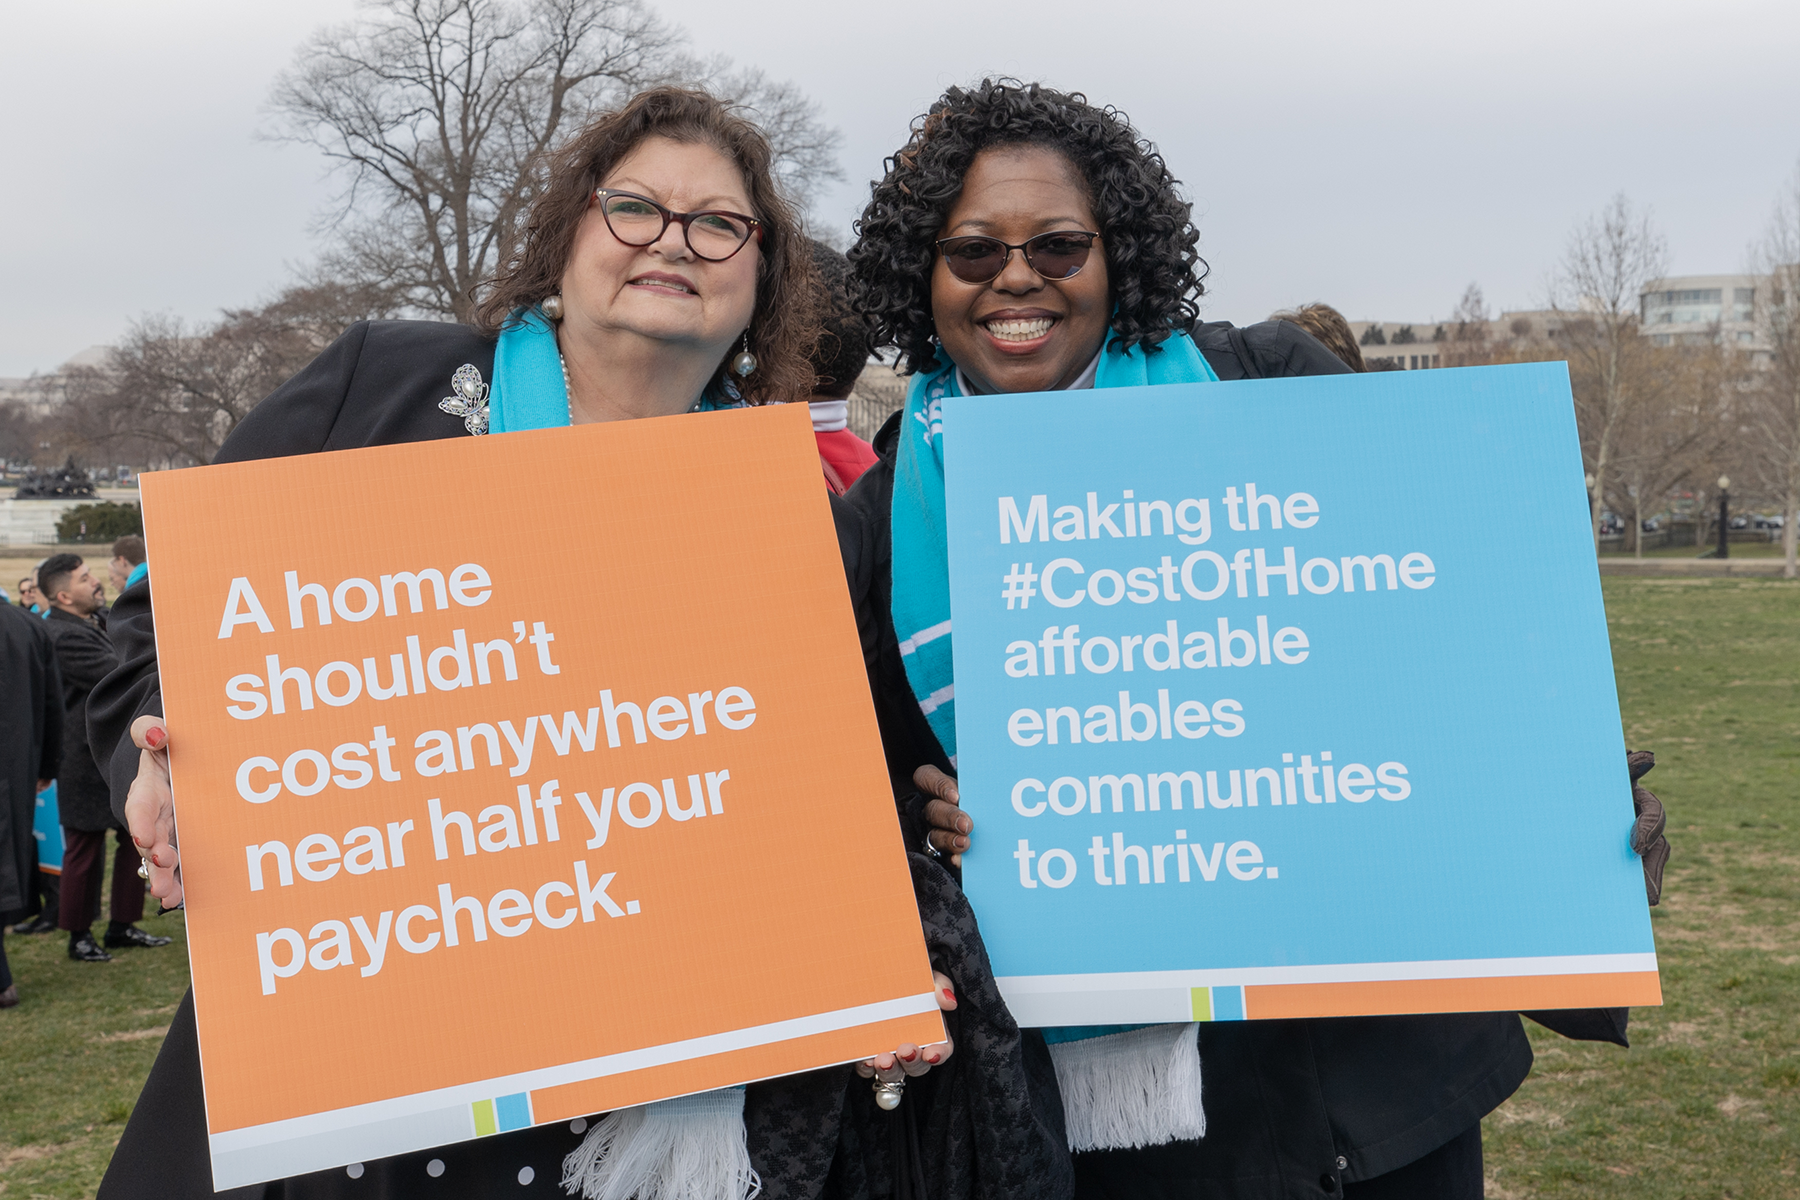 Learn more about Cost of Home